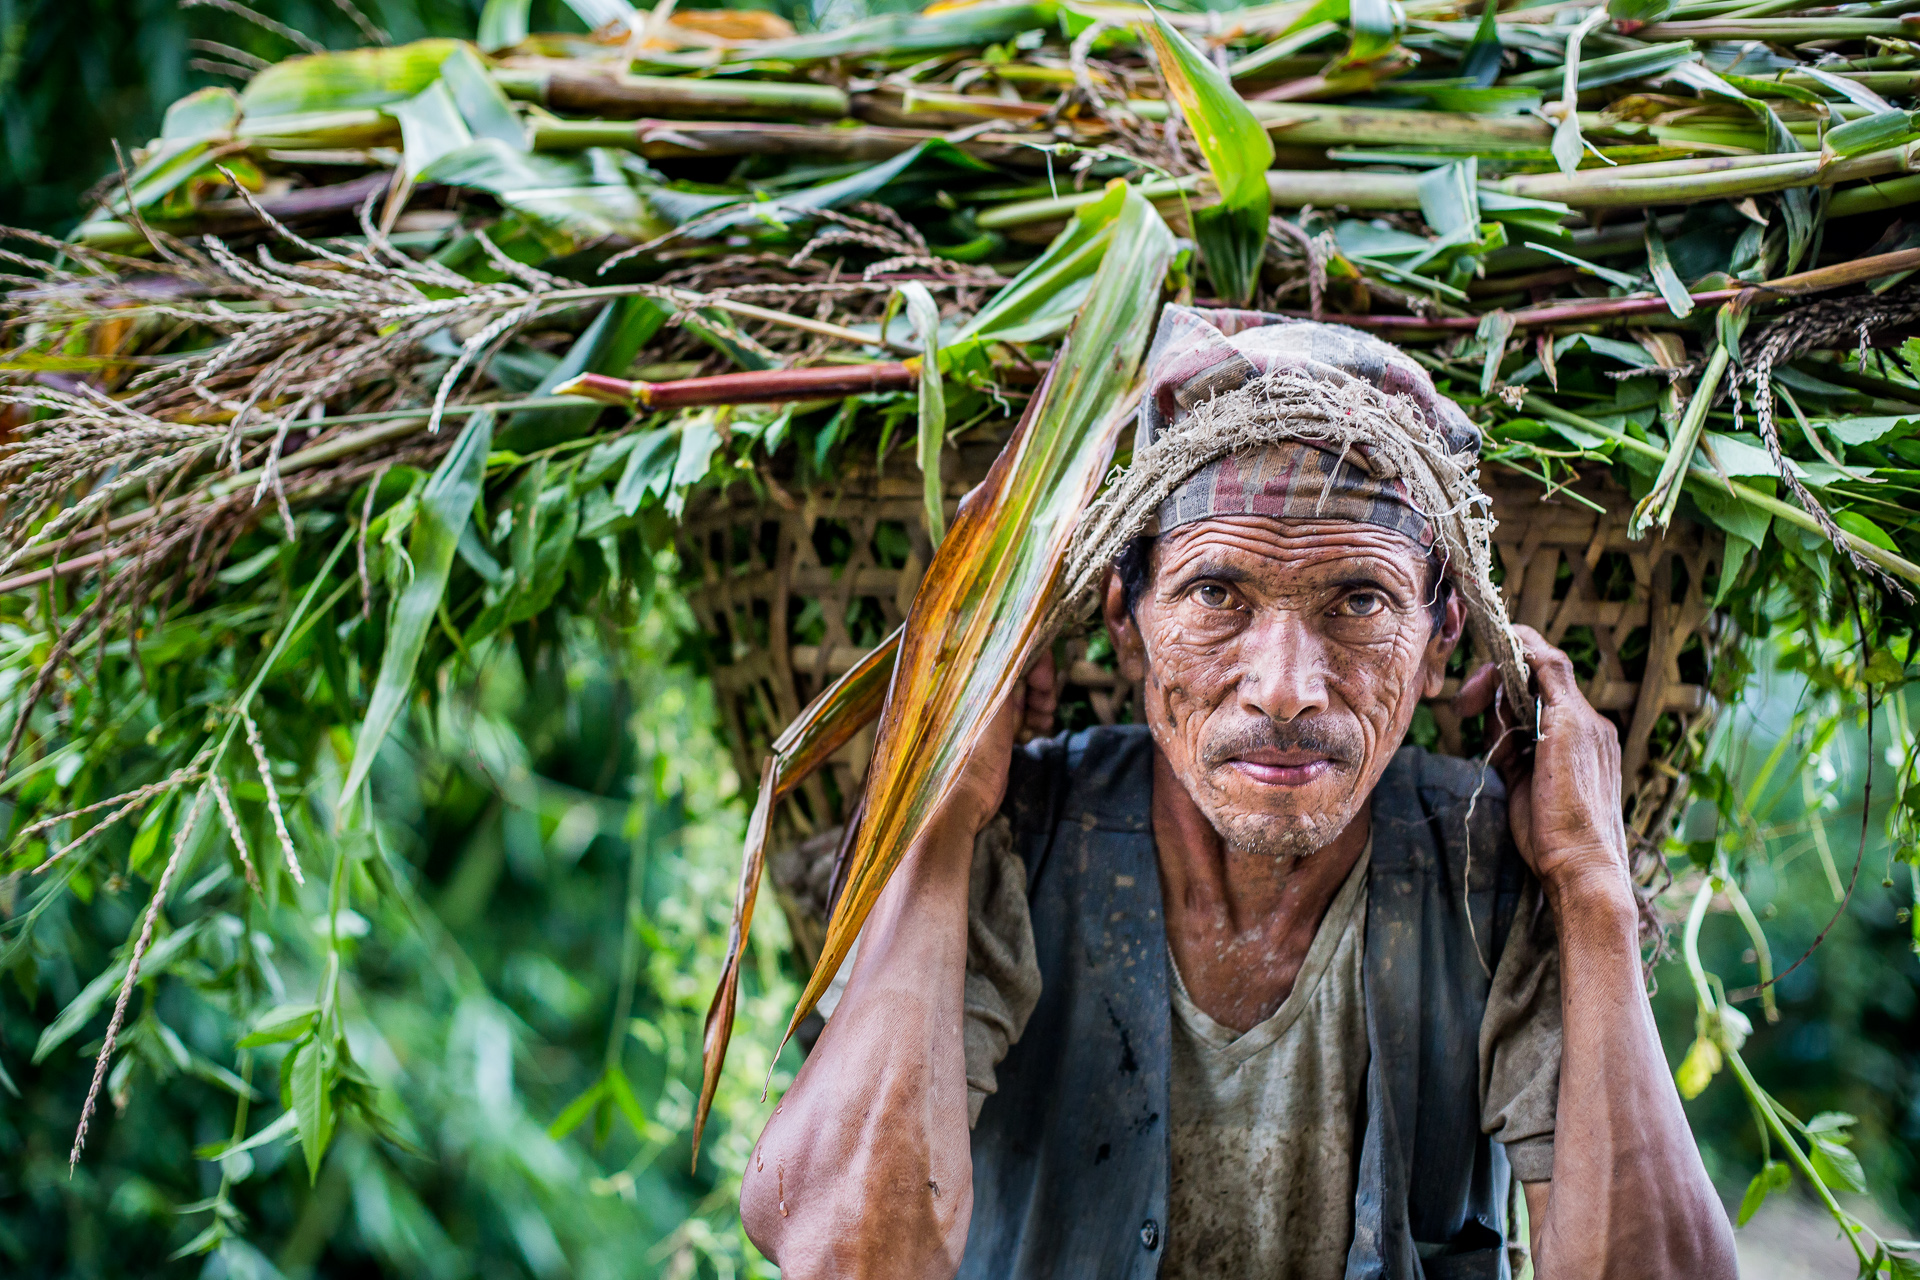 From a poor family, this father is carrying old corn plants which will be fed to the family's animals.